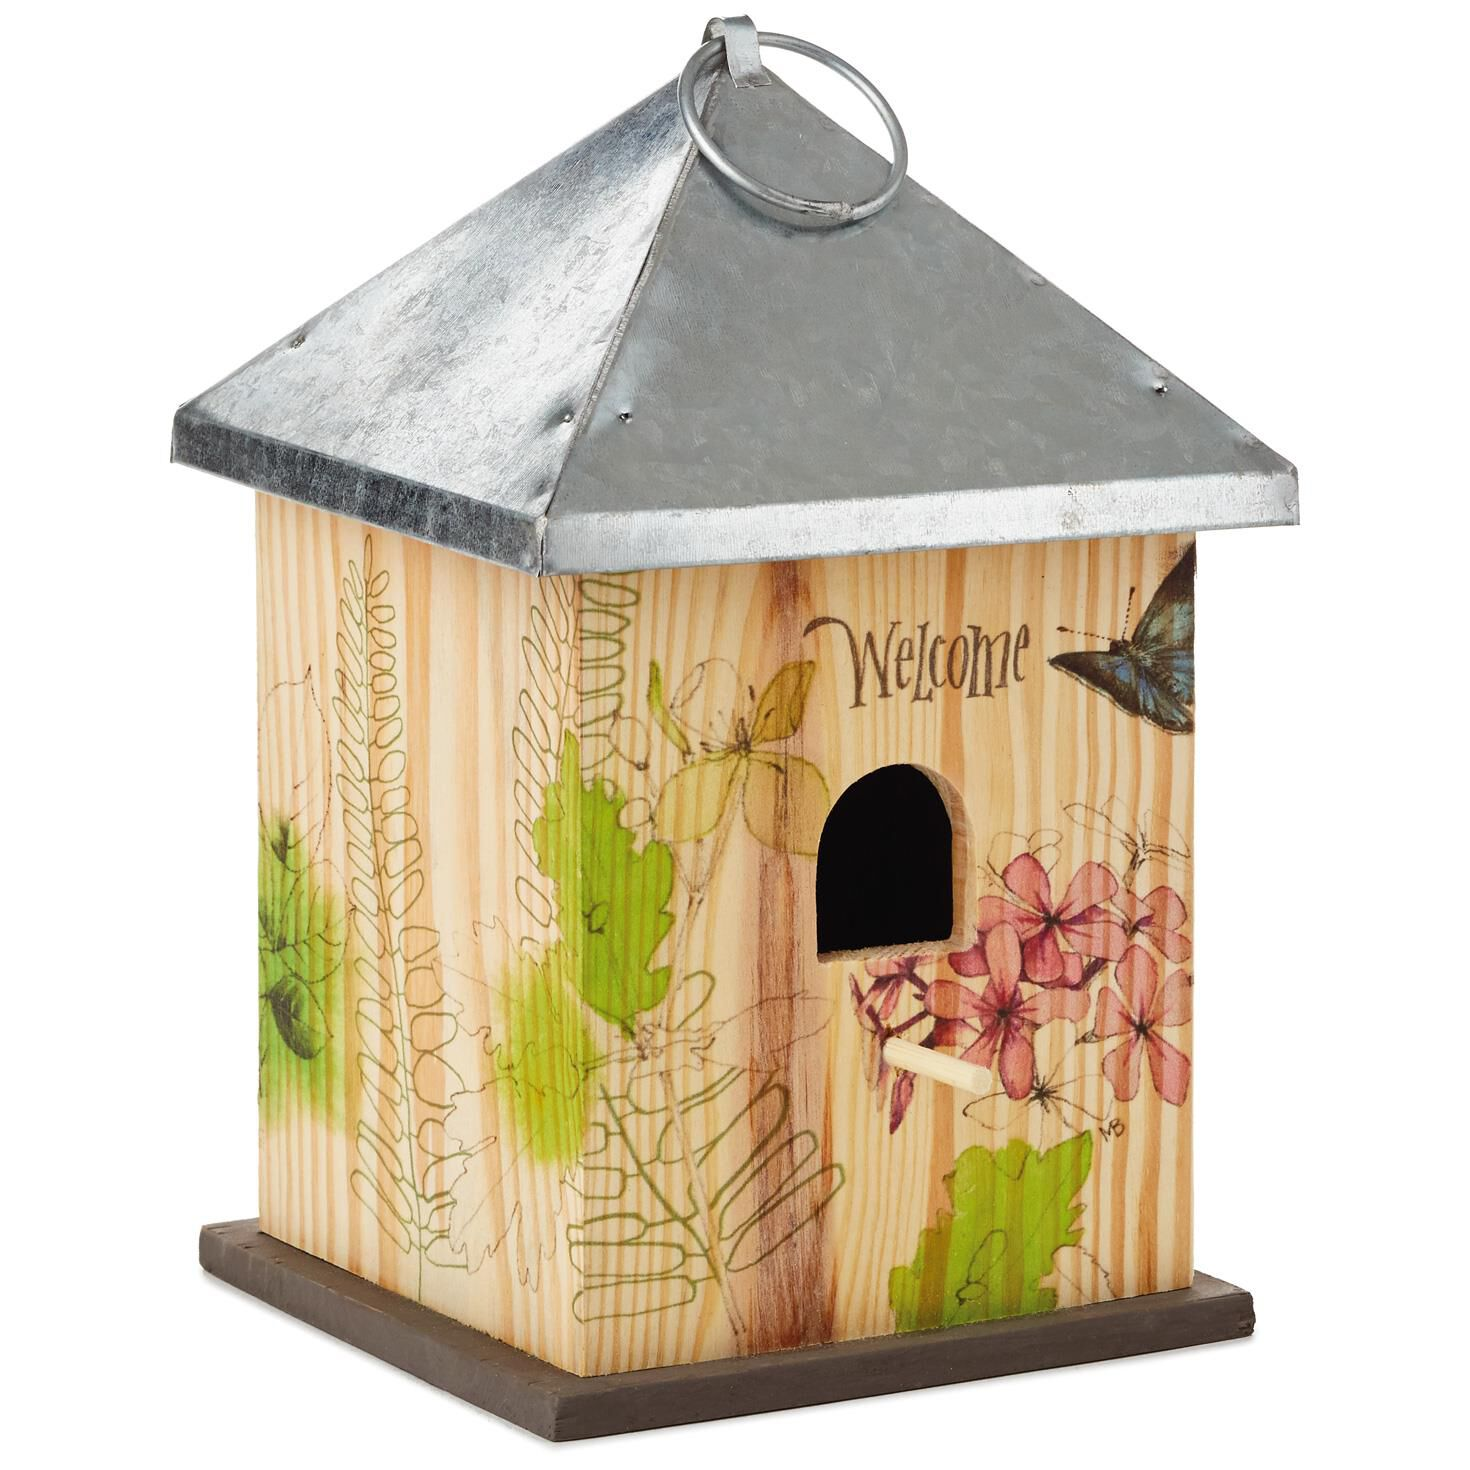 birdhouse rustic the kit bird barn scout feeder wooden wood small of best in s kits house cub x